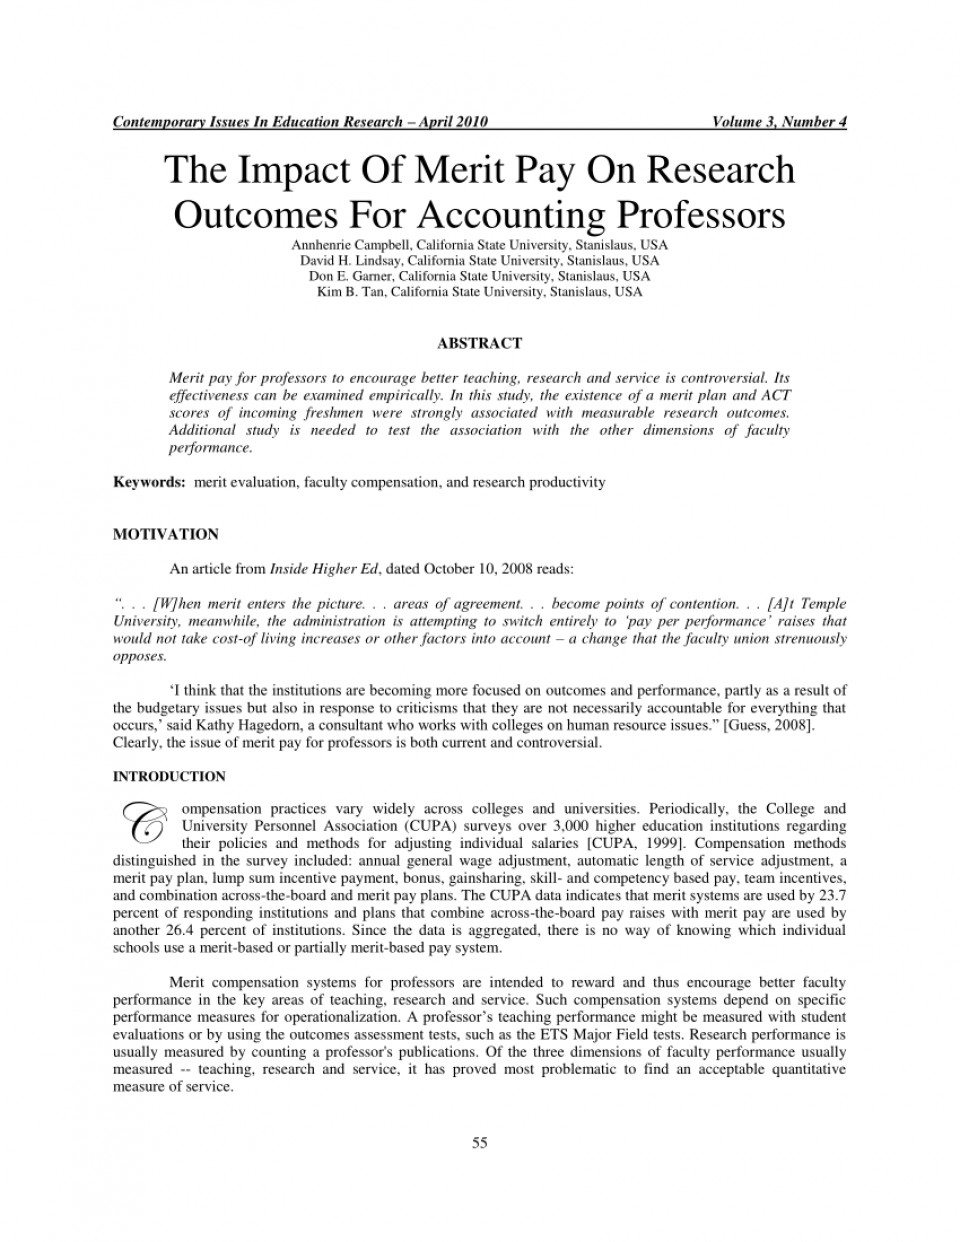 Pay for a Research Paper to Outsmart the System